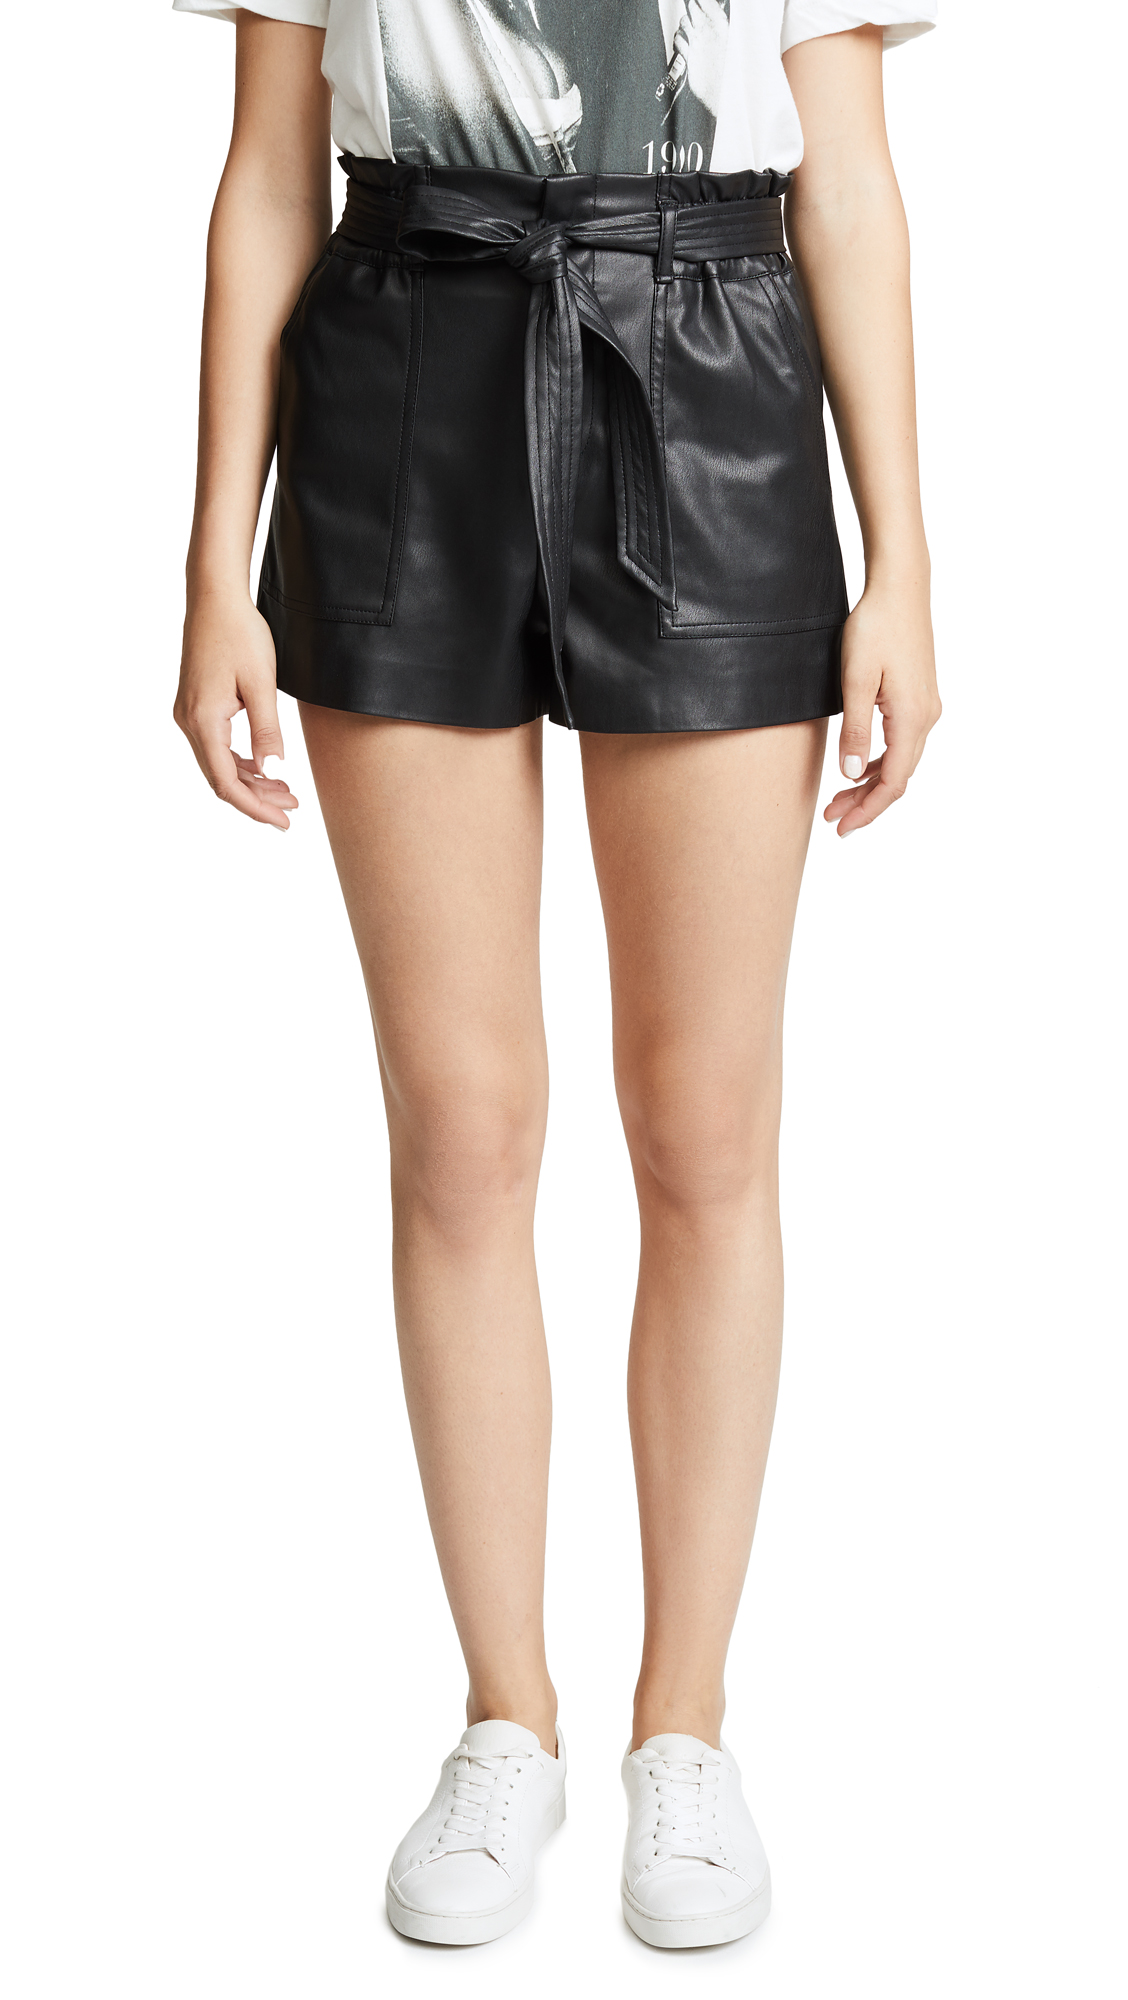 BLANK DENIM Dark Web Vegan Leather Shorts in Black